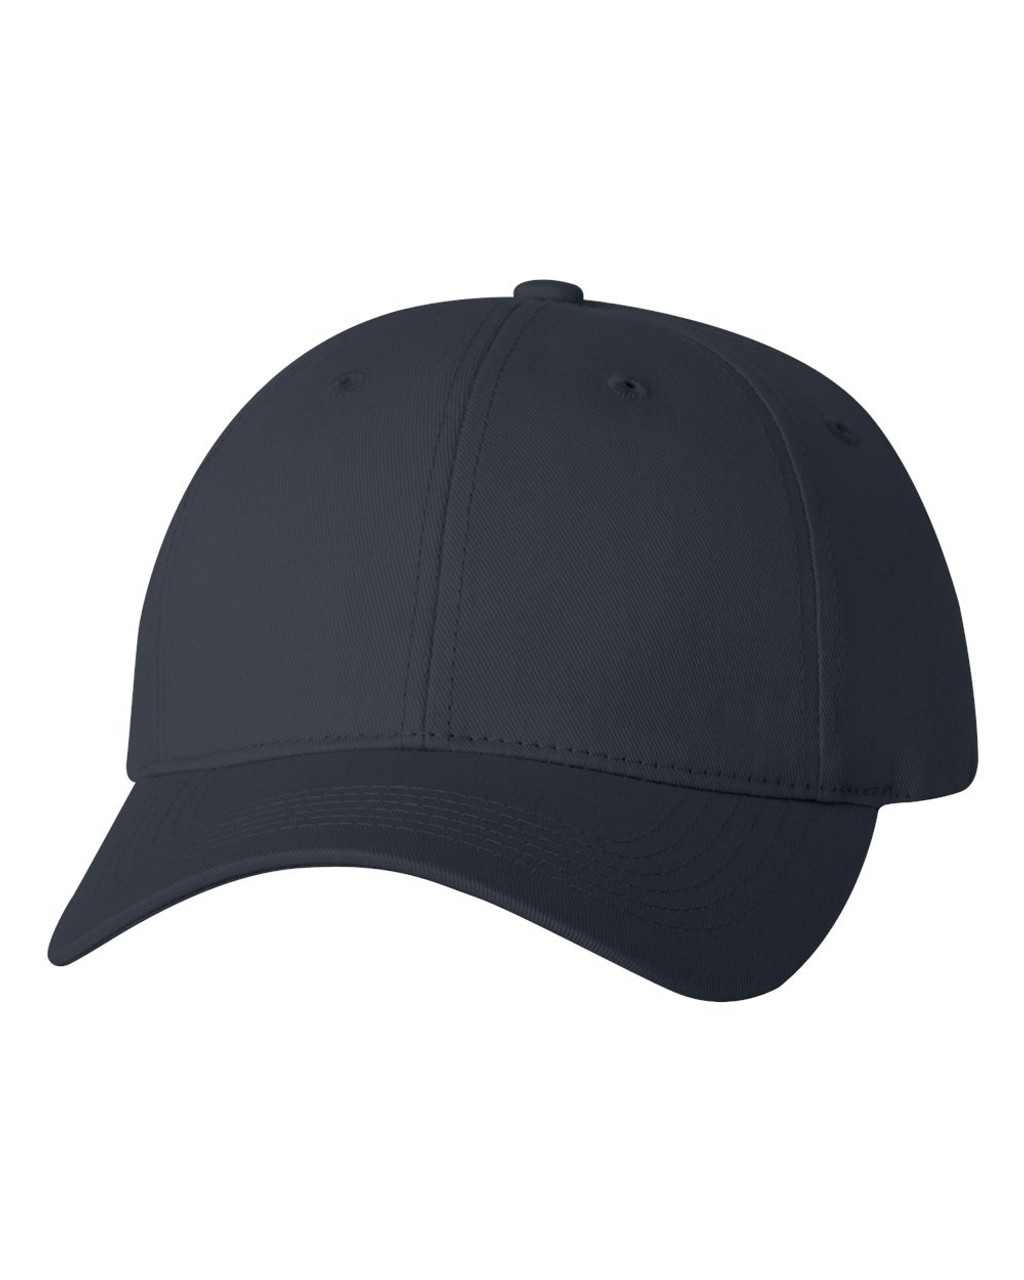 2260 - Twill cap with Velcro Closure by Sportsman in Navy Blue